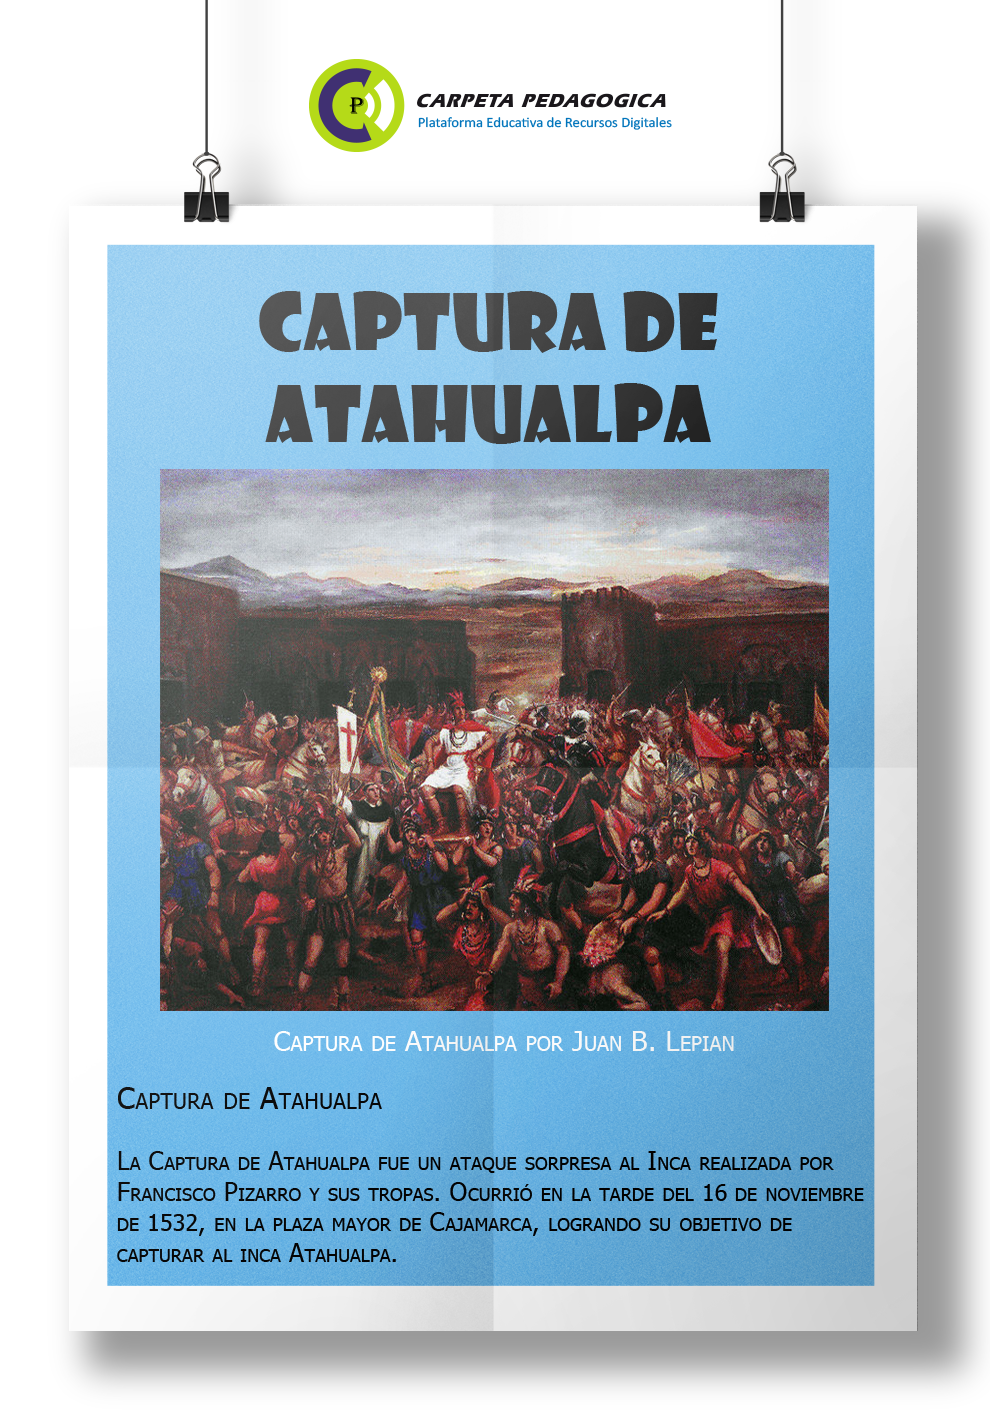 Captura de Atahualpa